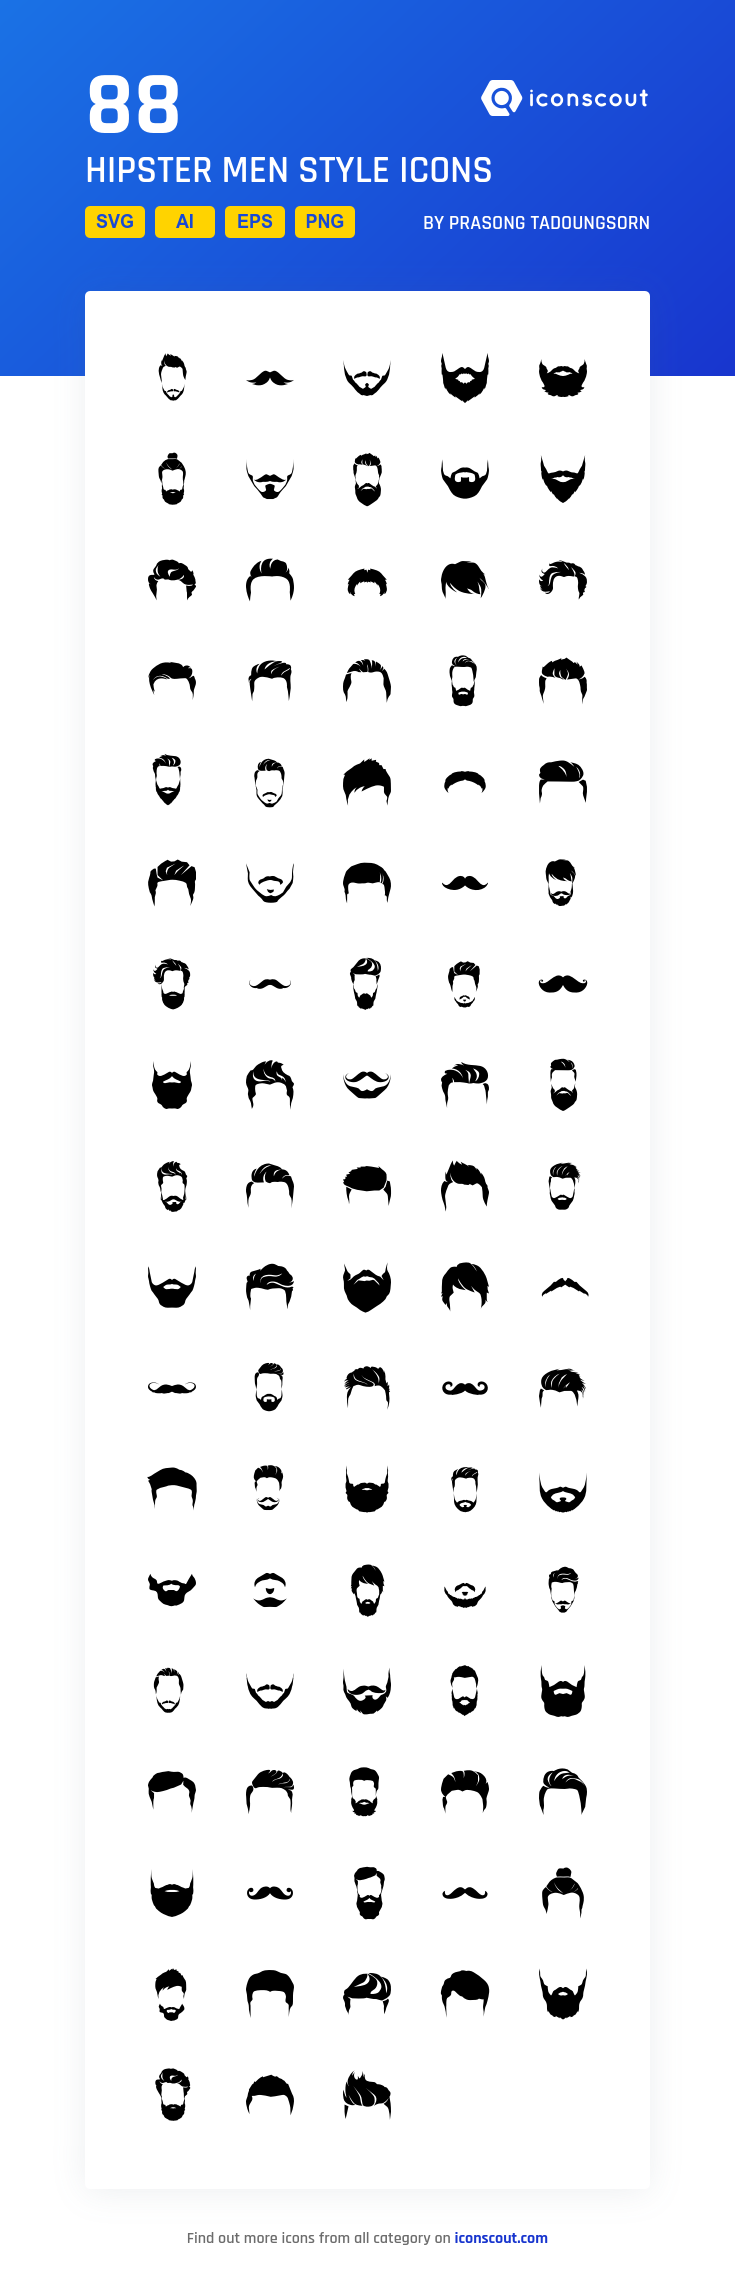 Hipster Men Style  Icon Pack - 88 Solid Icons